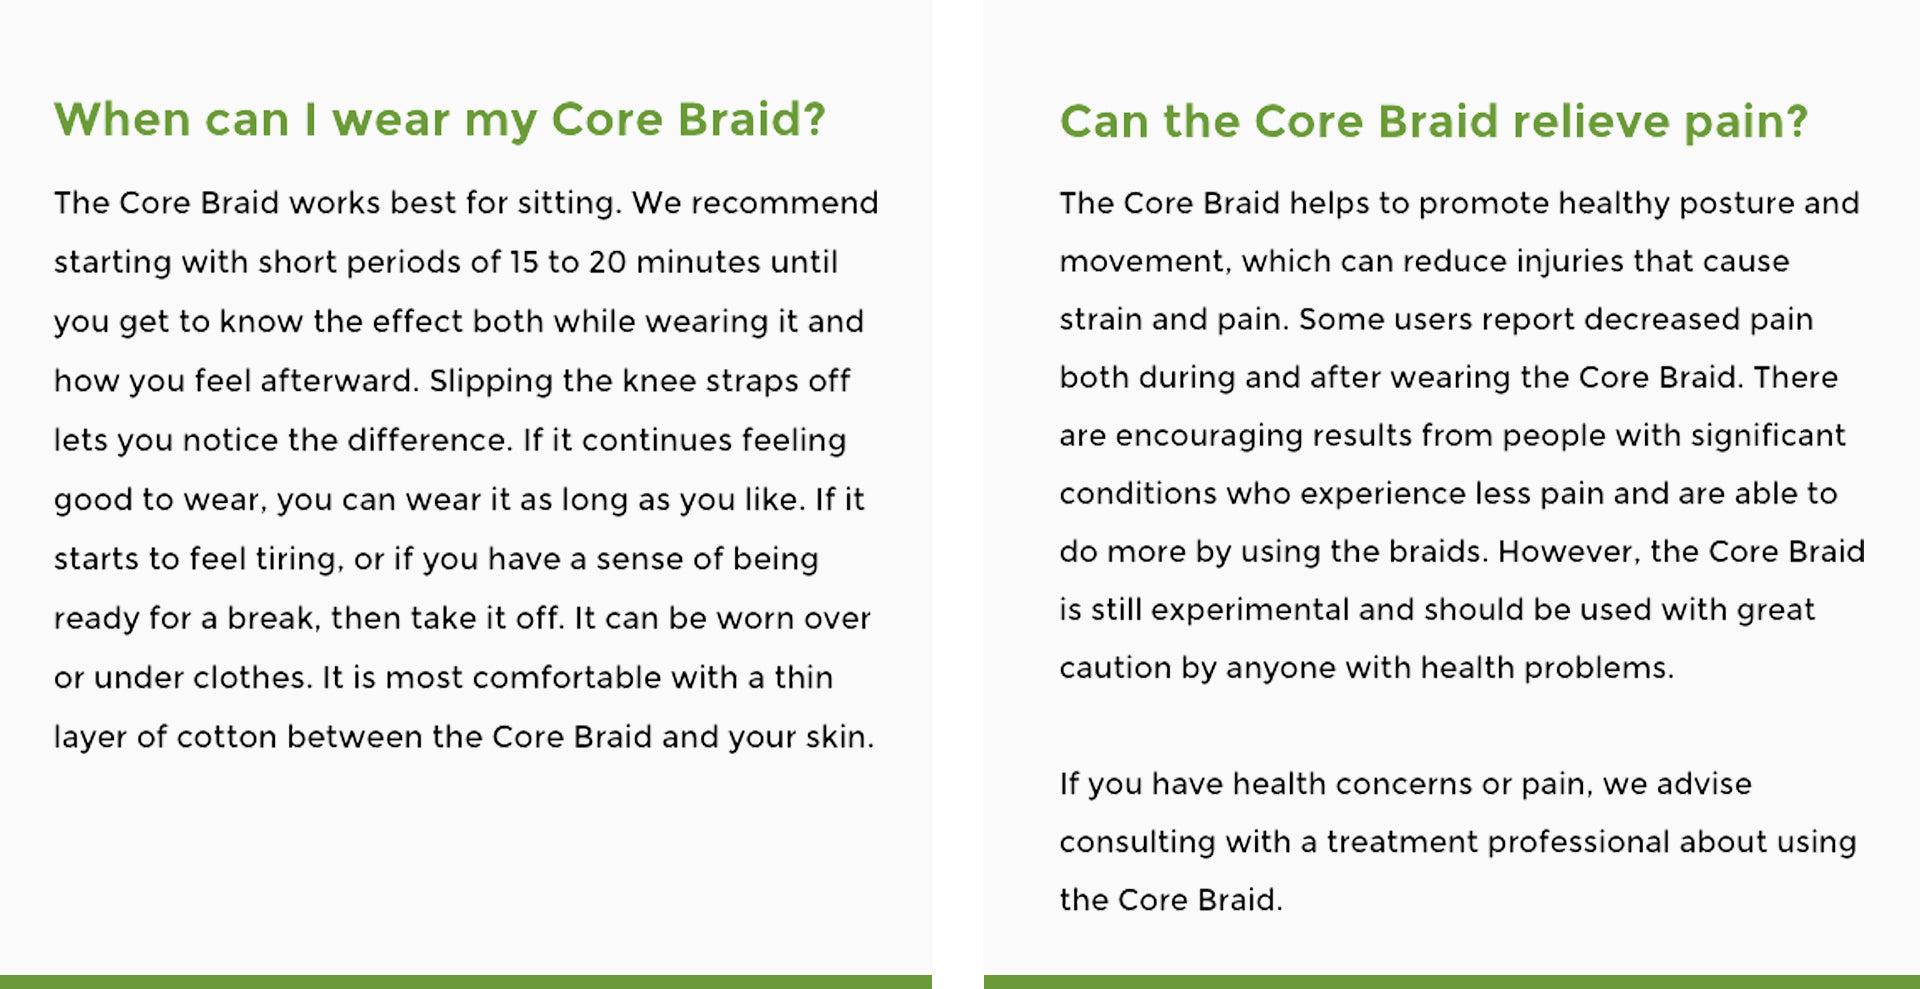 Listen to your body and wear the Core Braid for as long as it feels good